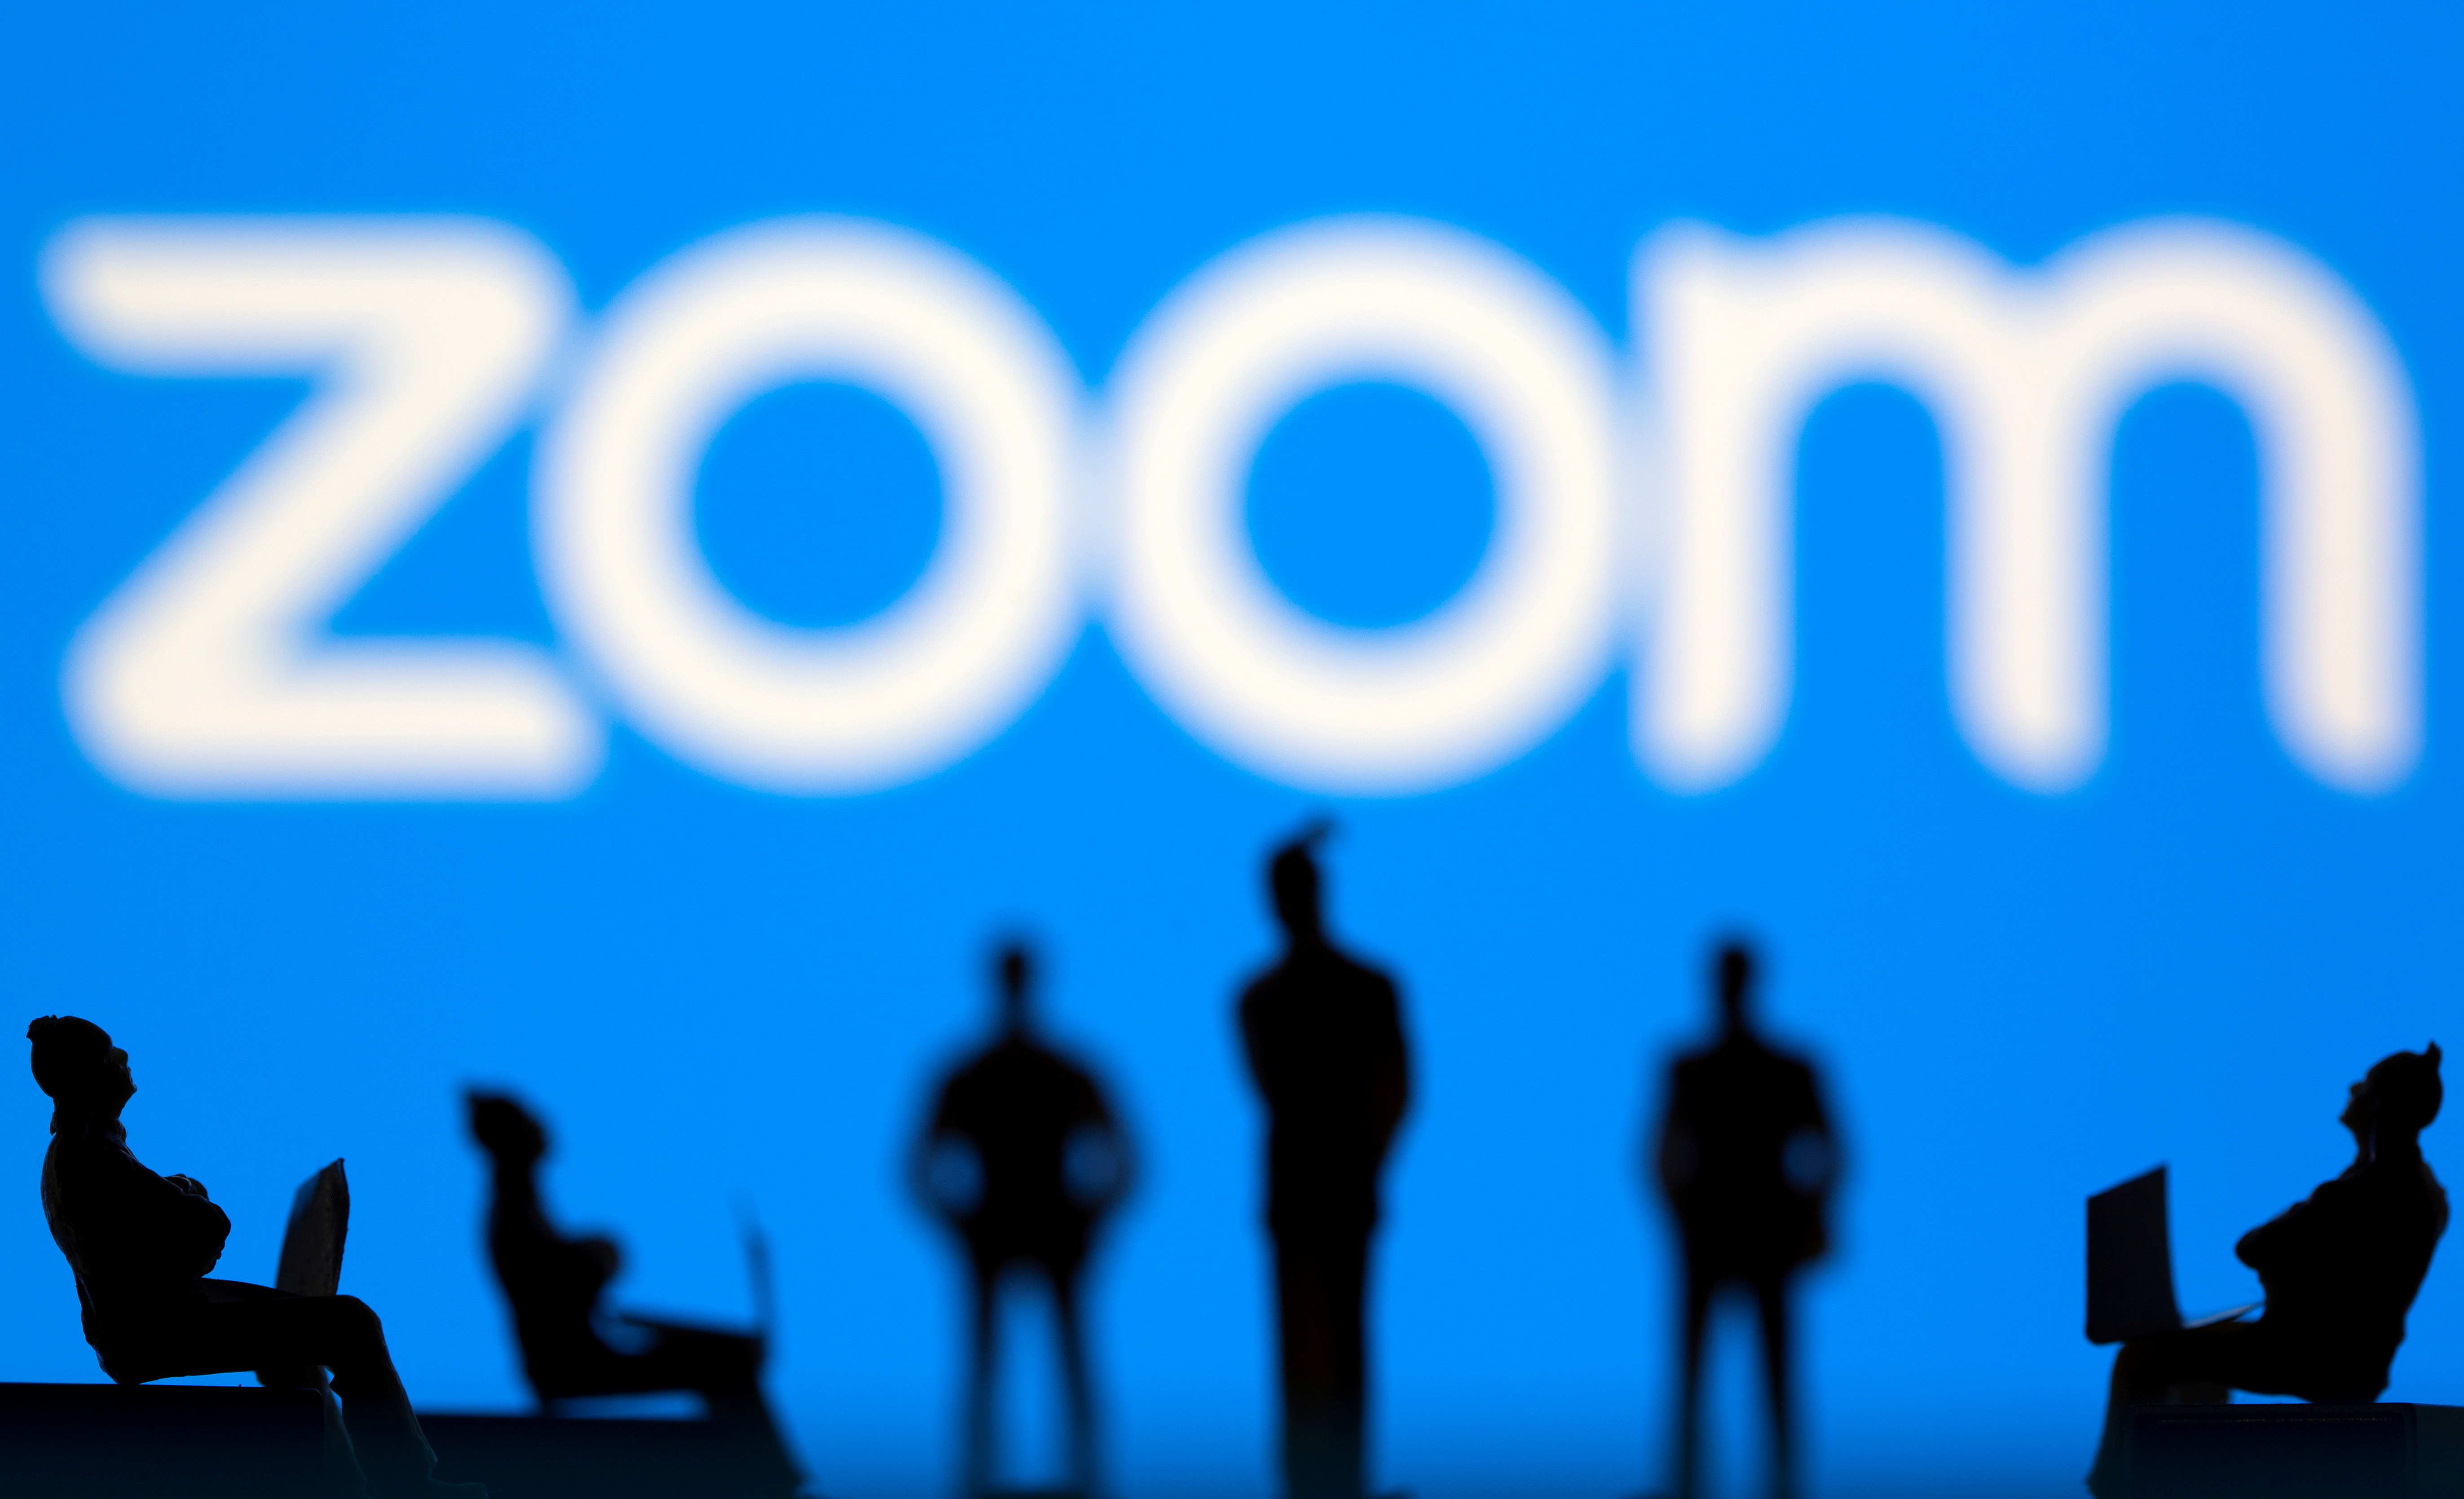 Small toy figures are seen in front of Zoom logo in this illustration picture taken March 15, 2021. REUTERS/Dado Ruvic/Illustration/File Photo